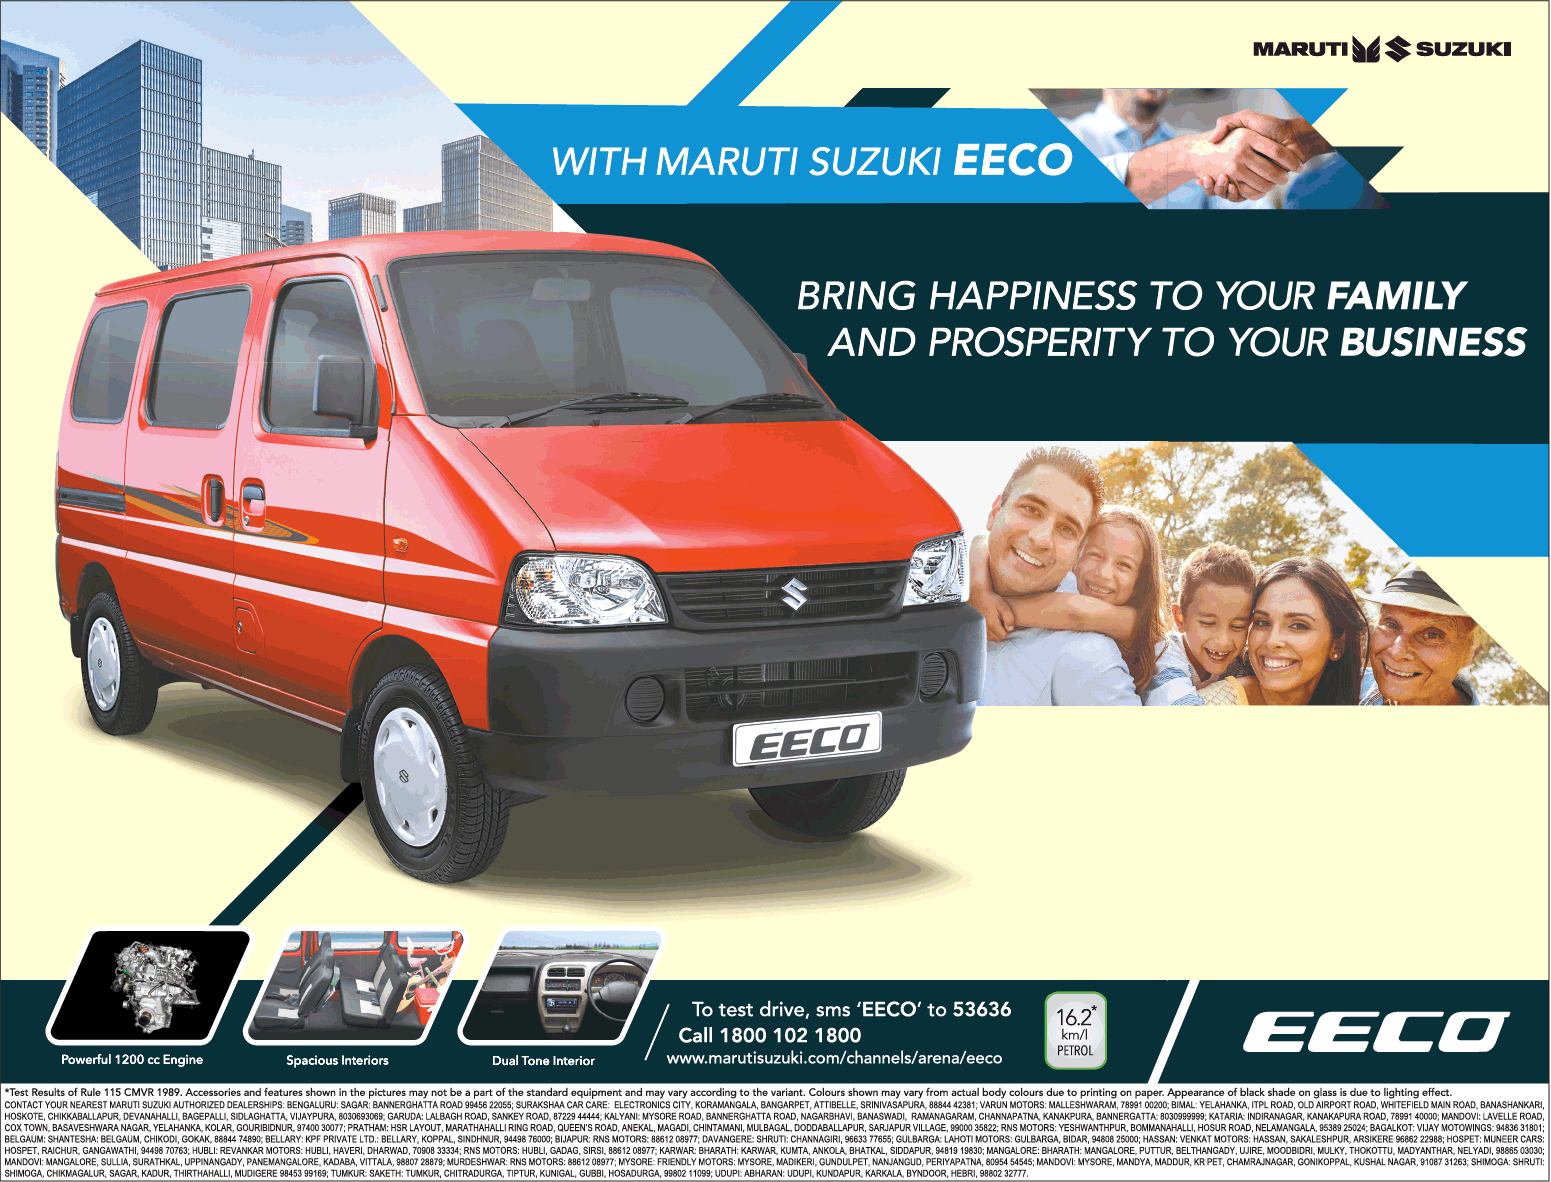 Maruti Suzuki Eeco Car Bring Happiness To Your Family And Prosperity